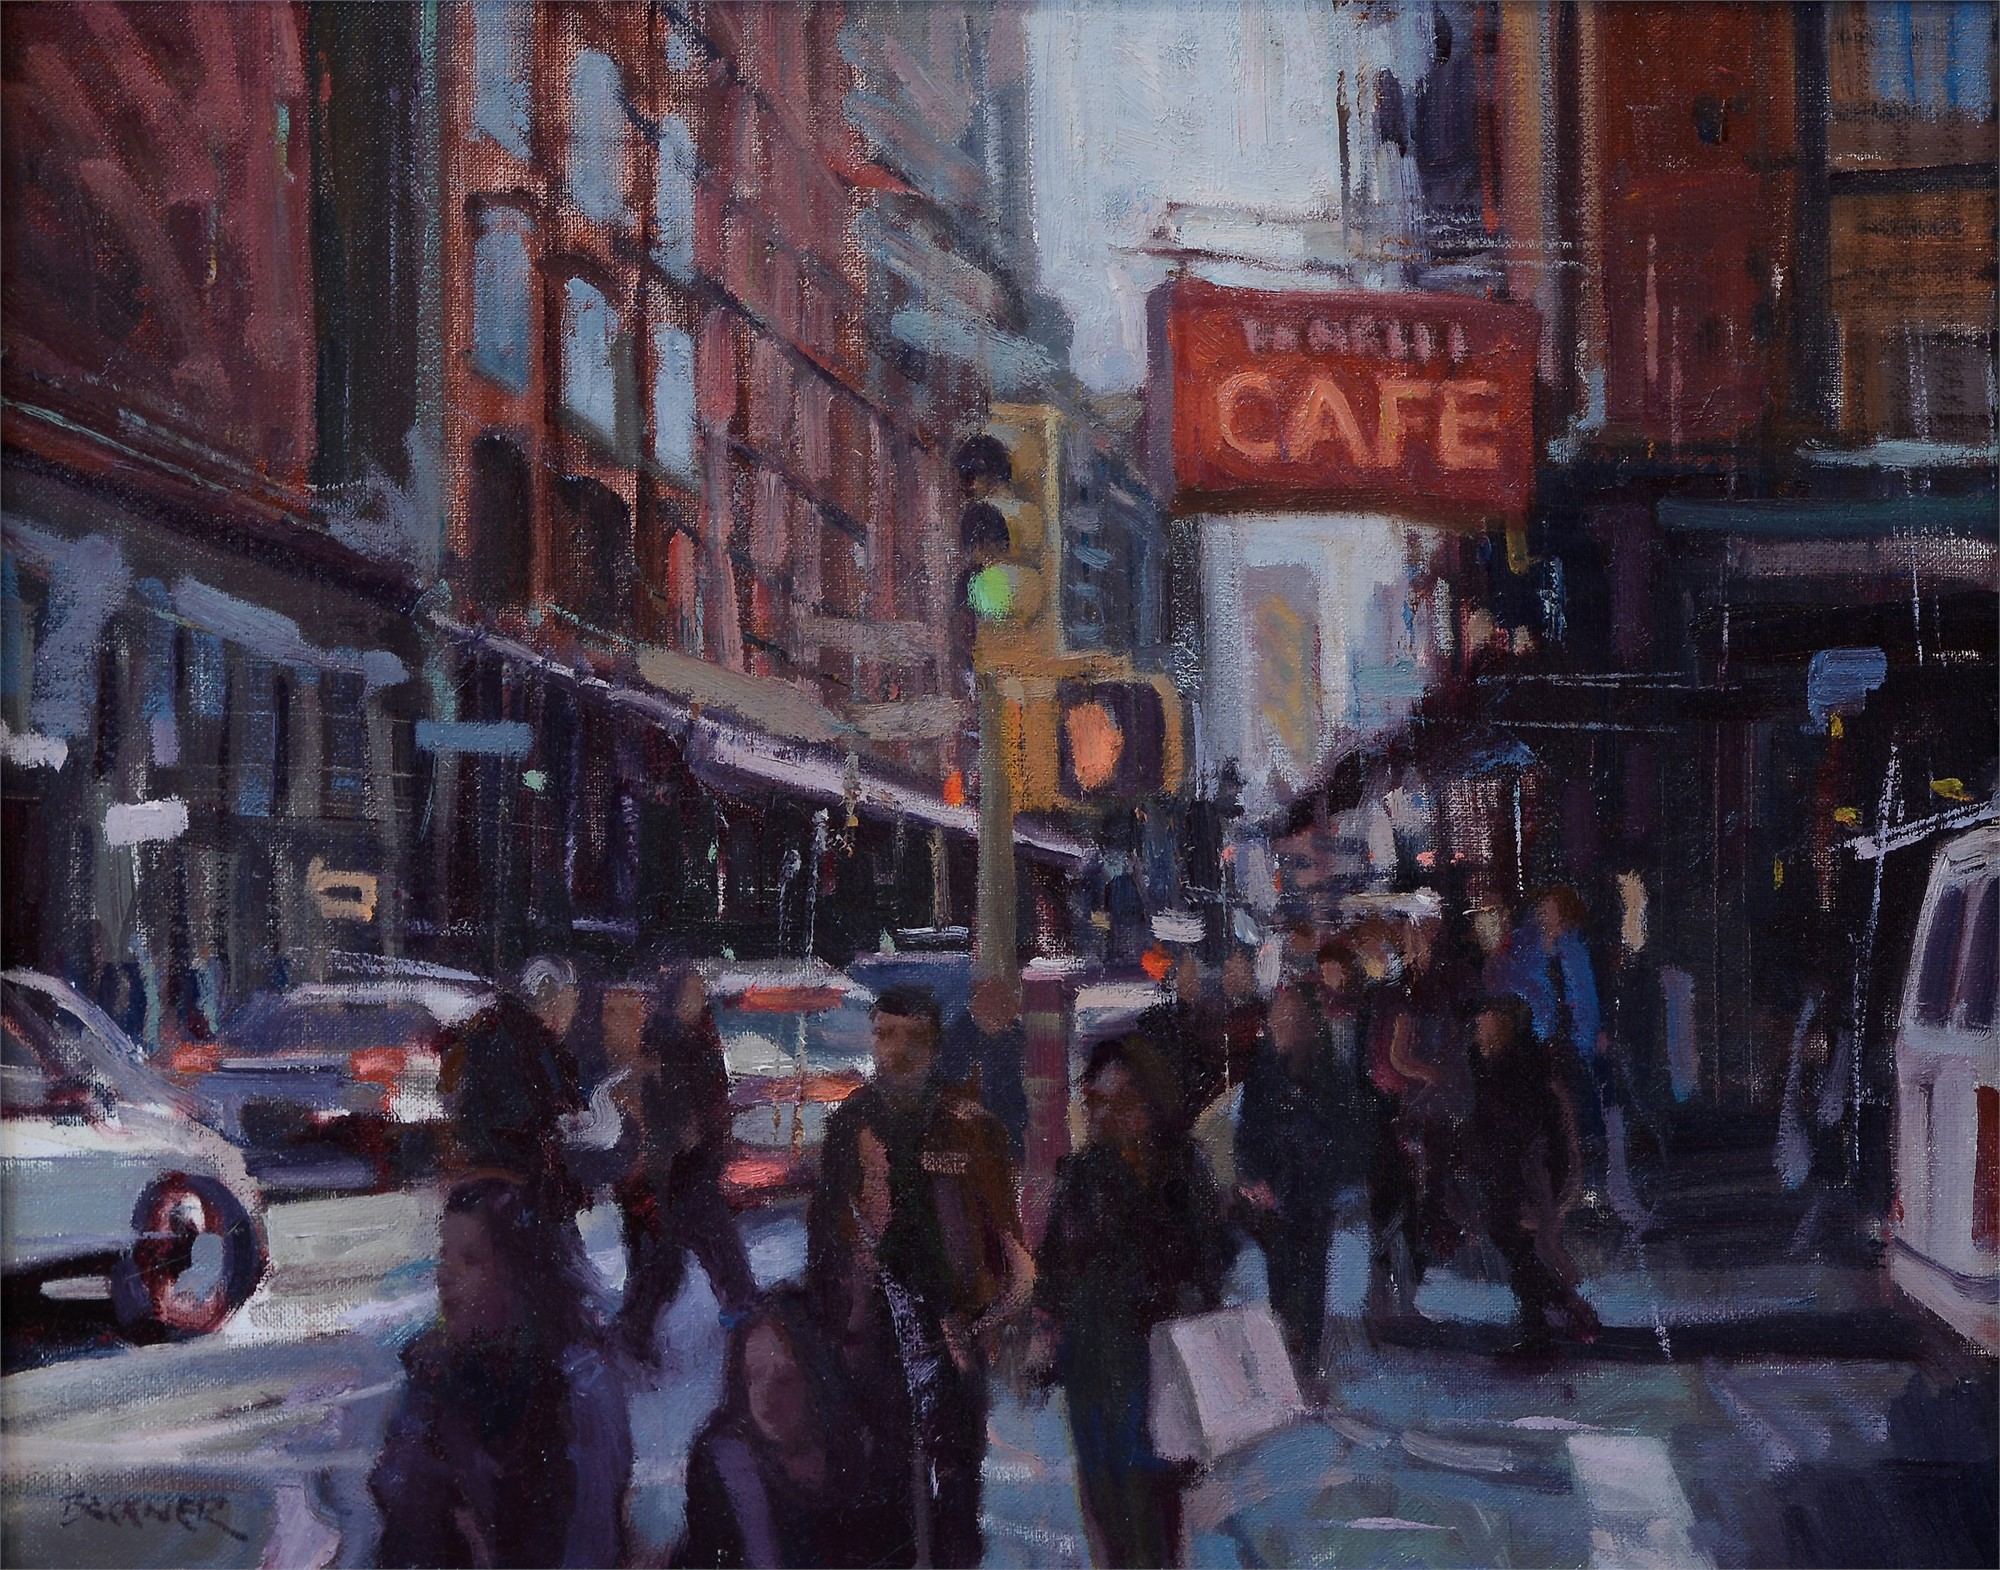 Cafe by Jim Beckner